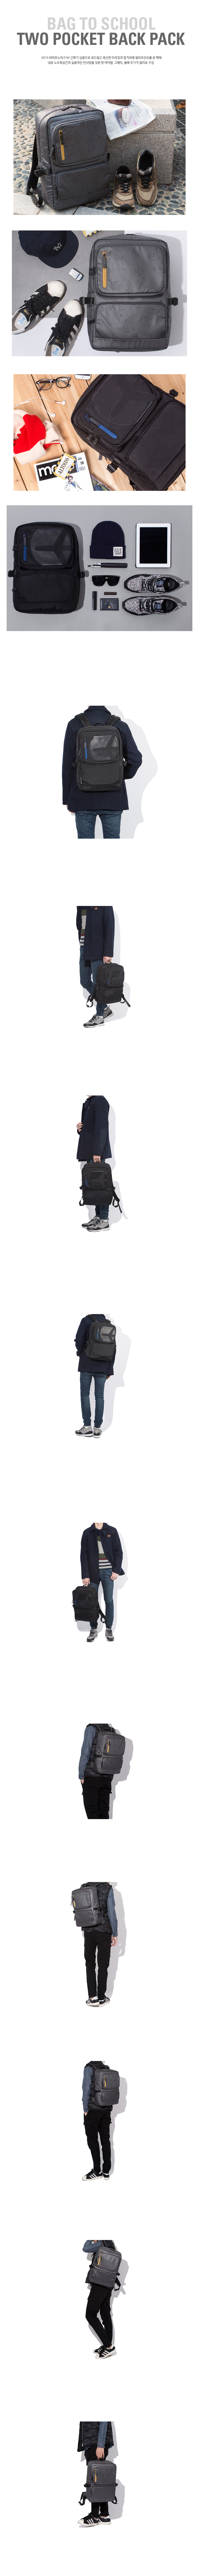 [ VIAMONOH ] BAG TO SCHOOL TWO POCKET BACKPACK (VAEF-2022)